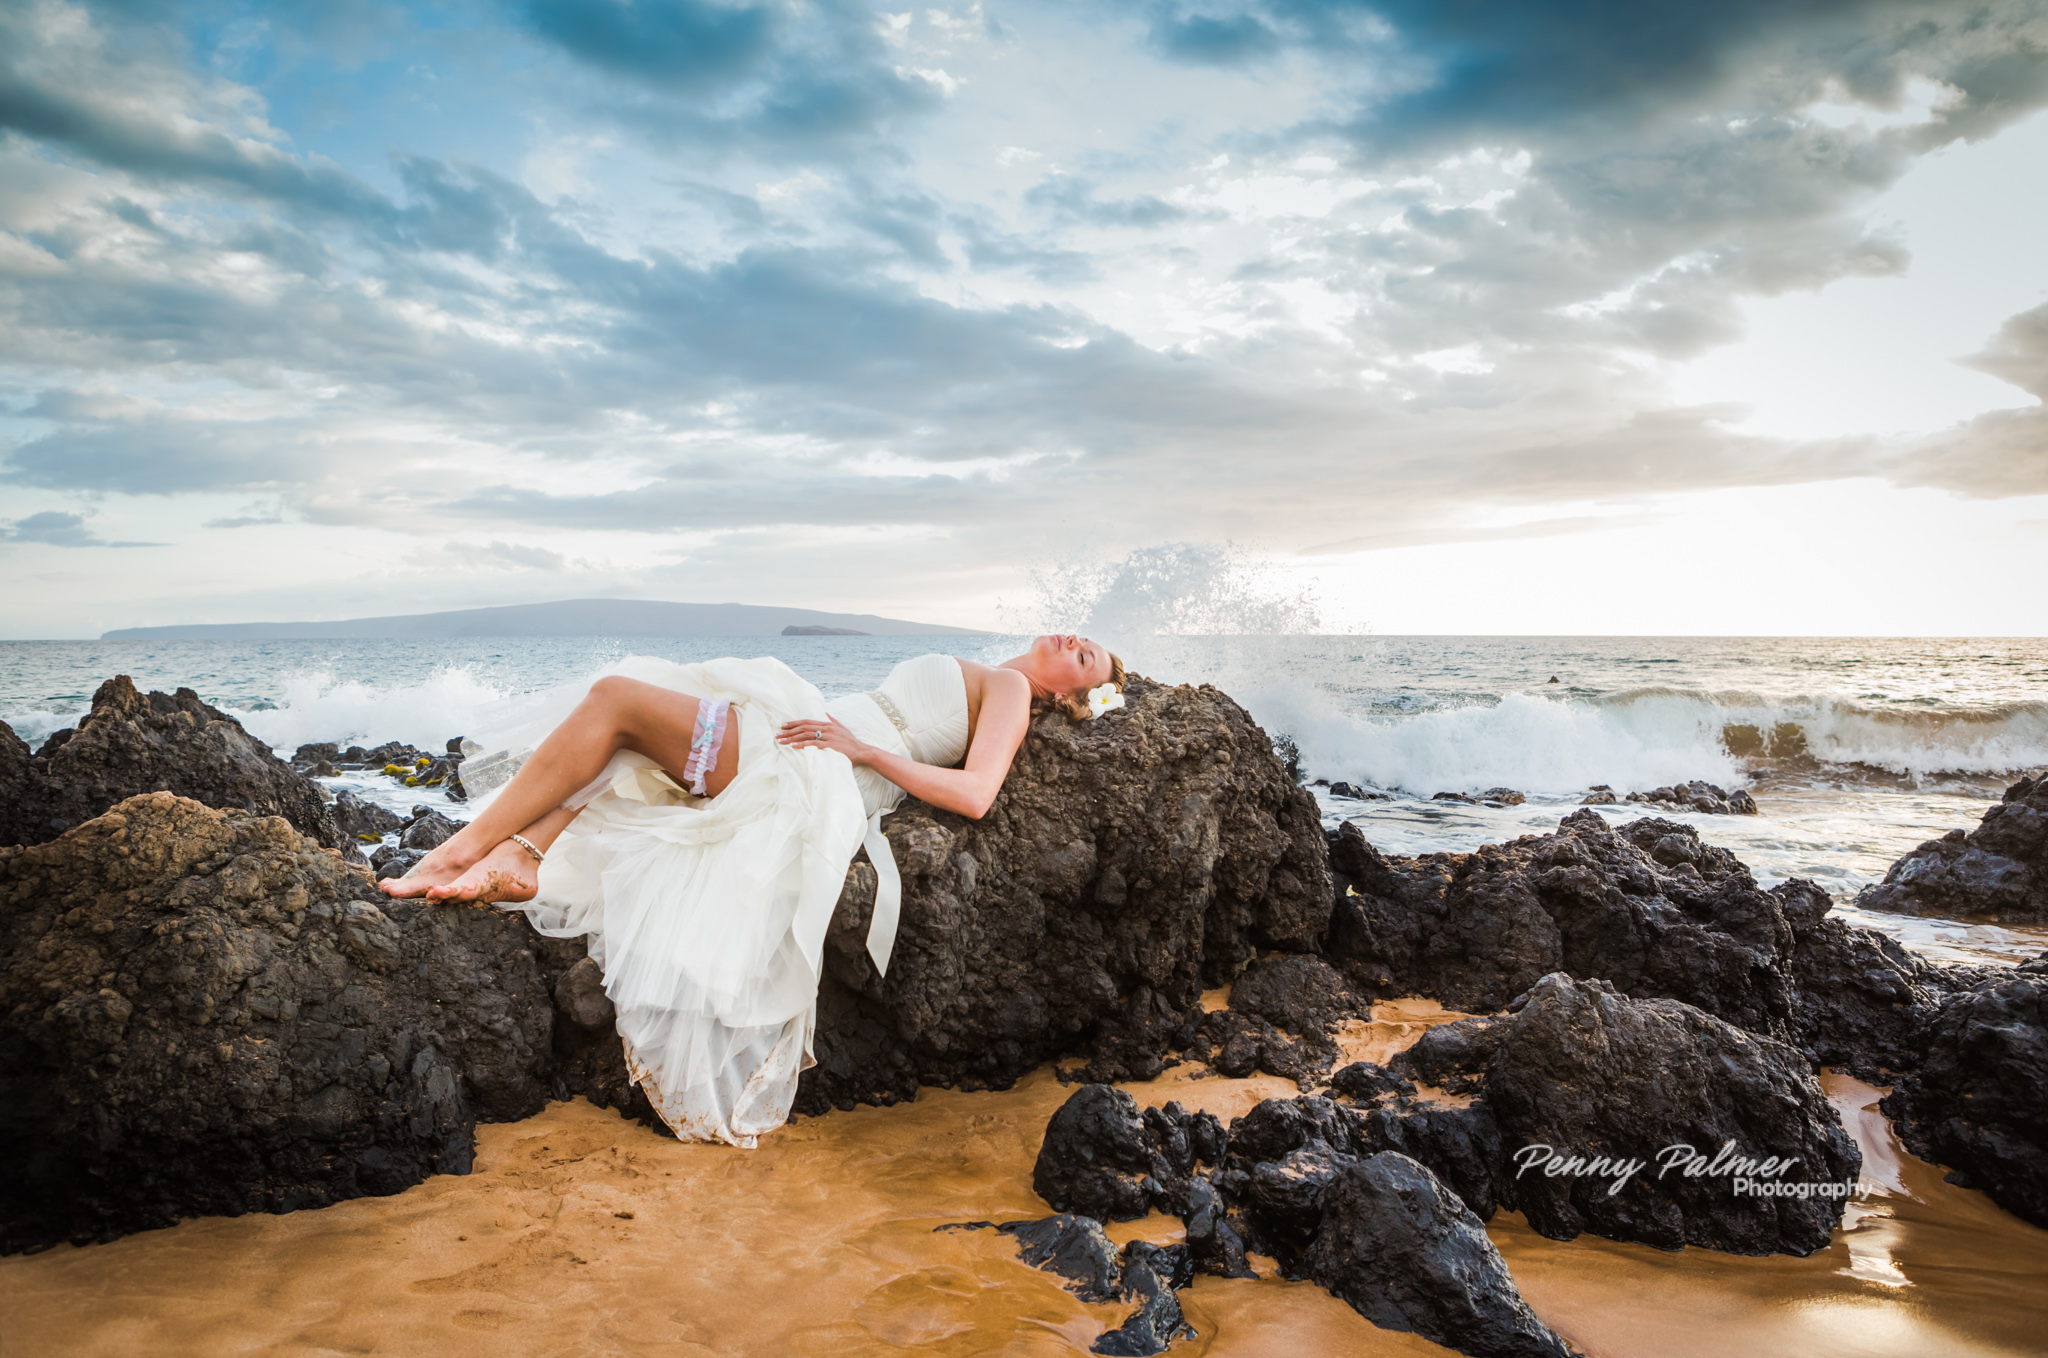 looking for a photographer for my wedding on Maui